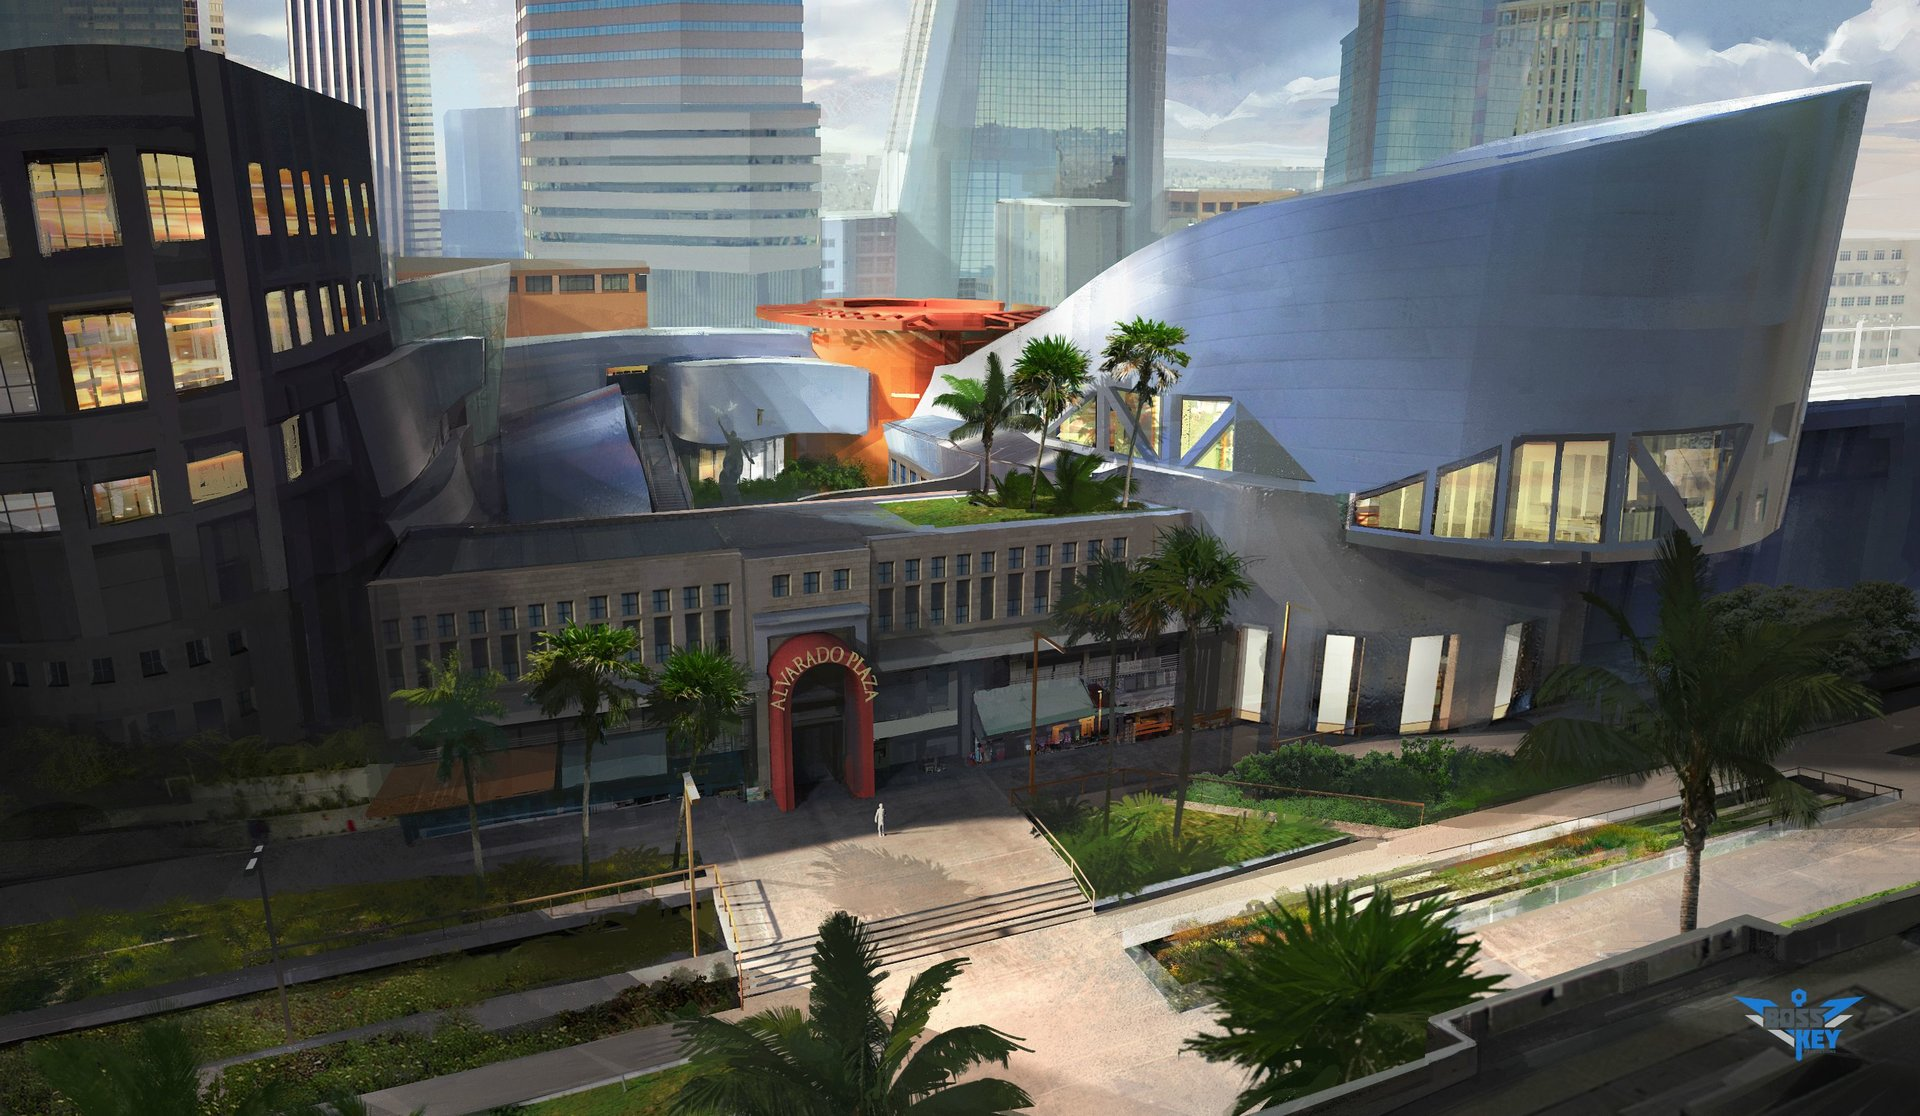 Boss key productions concept art depository alvarado plaza environment concept 1 establishing shot imgur